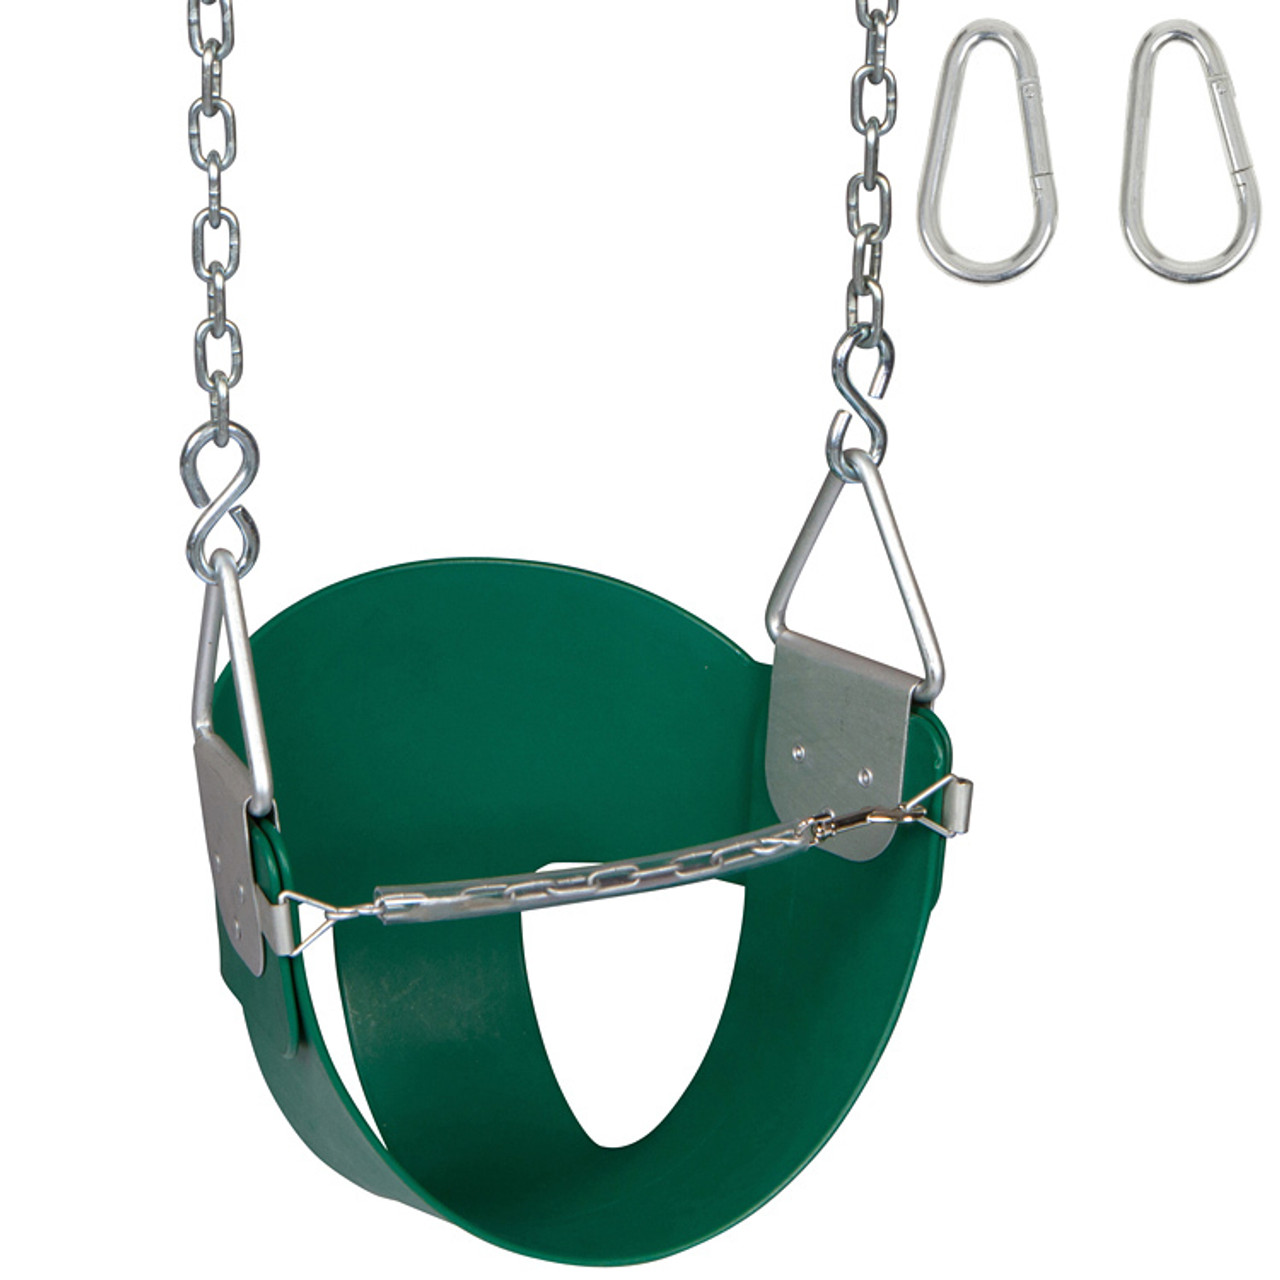 Half Bucket Swing Seat With Chains